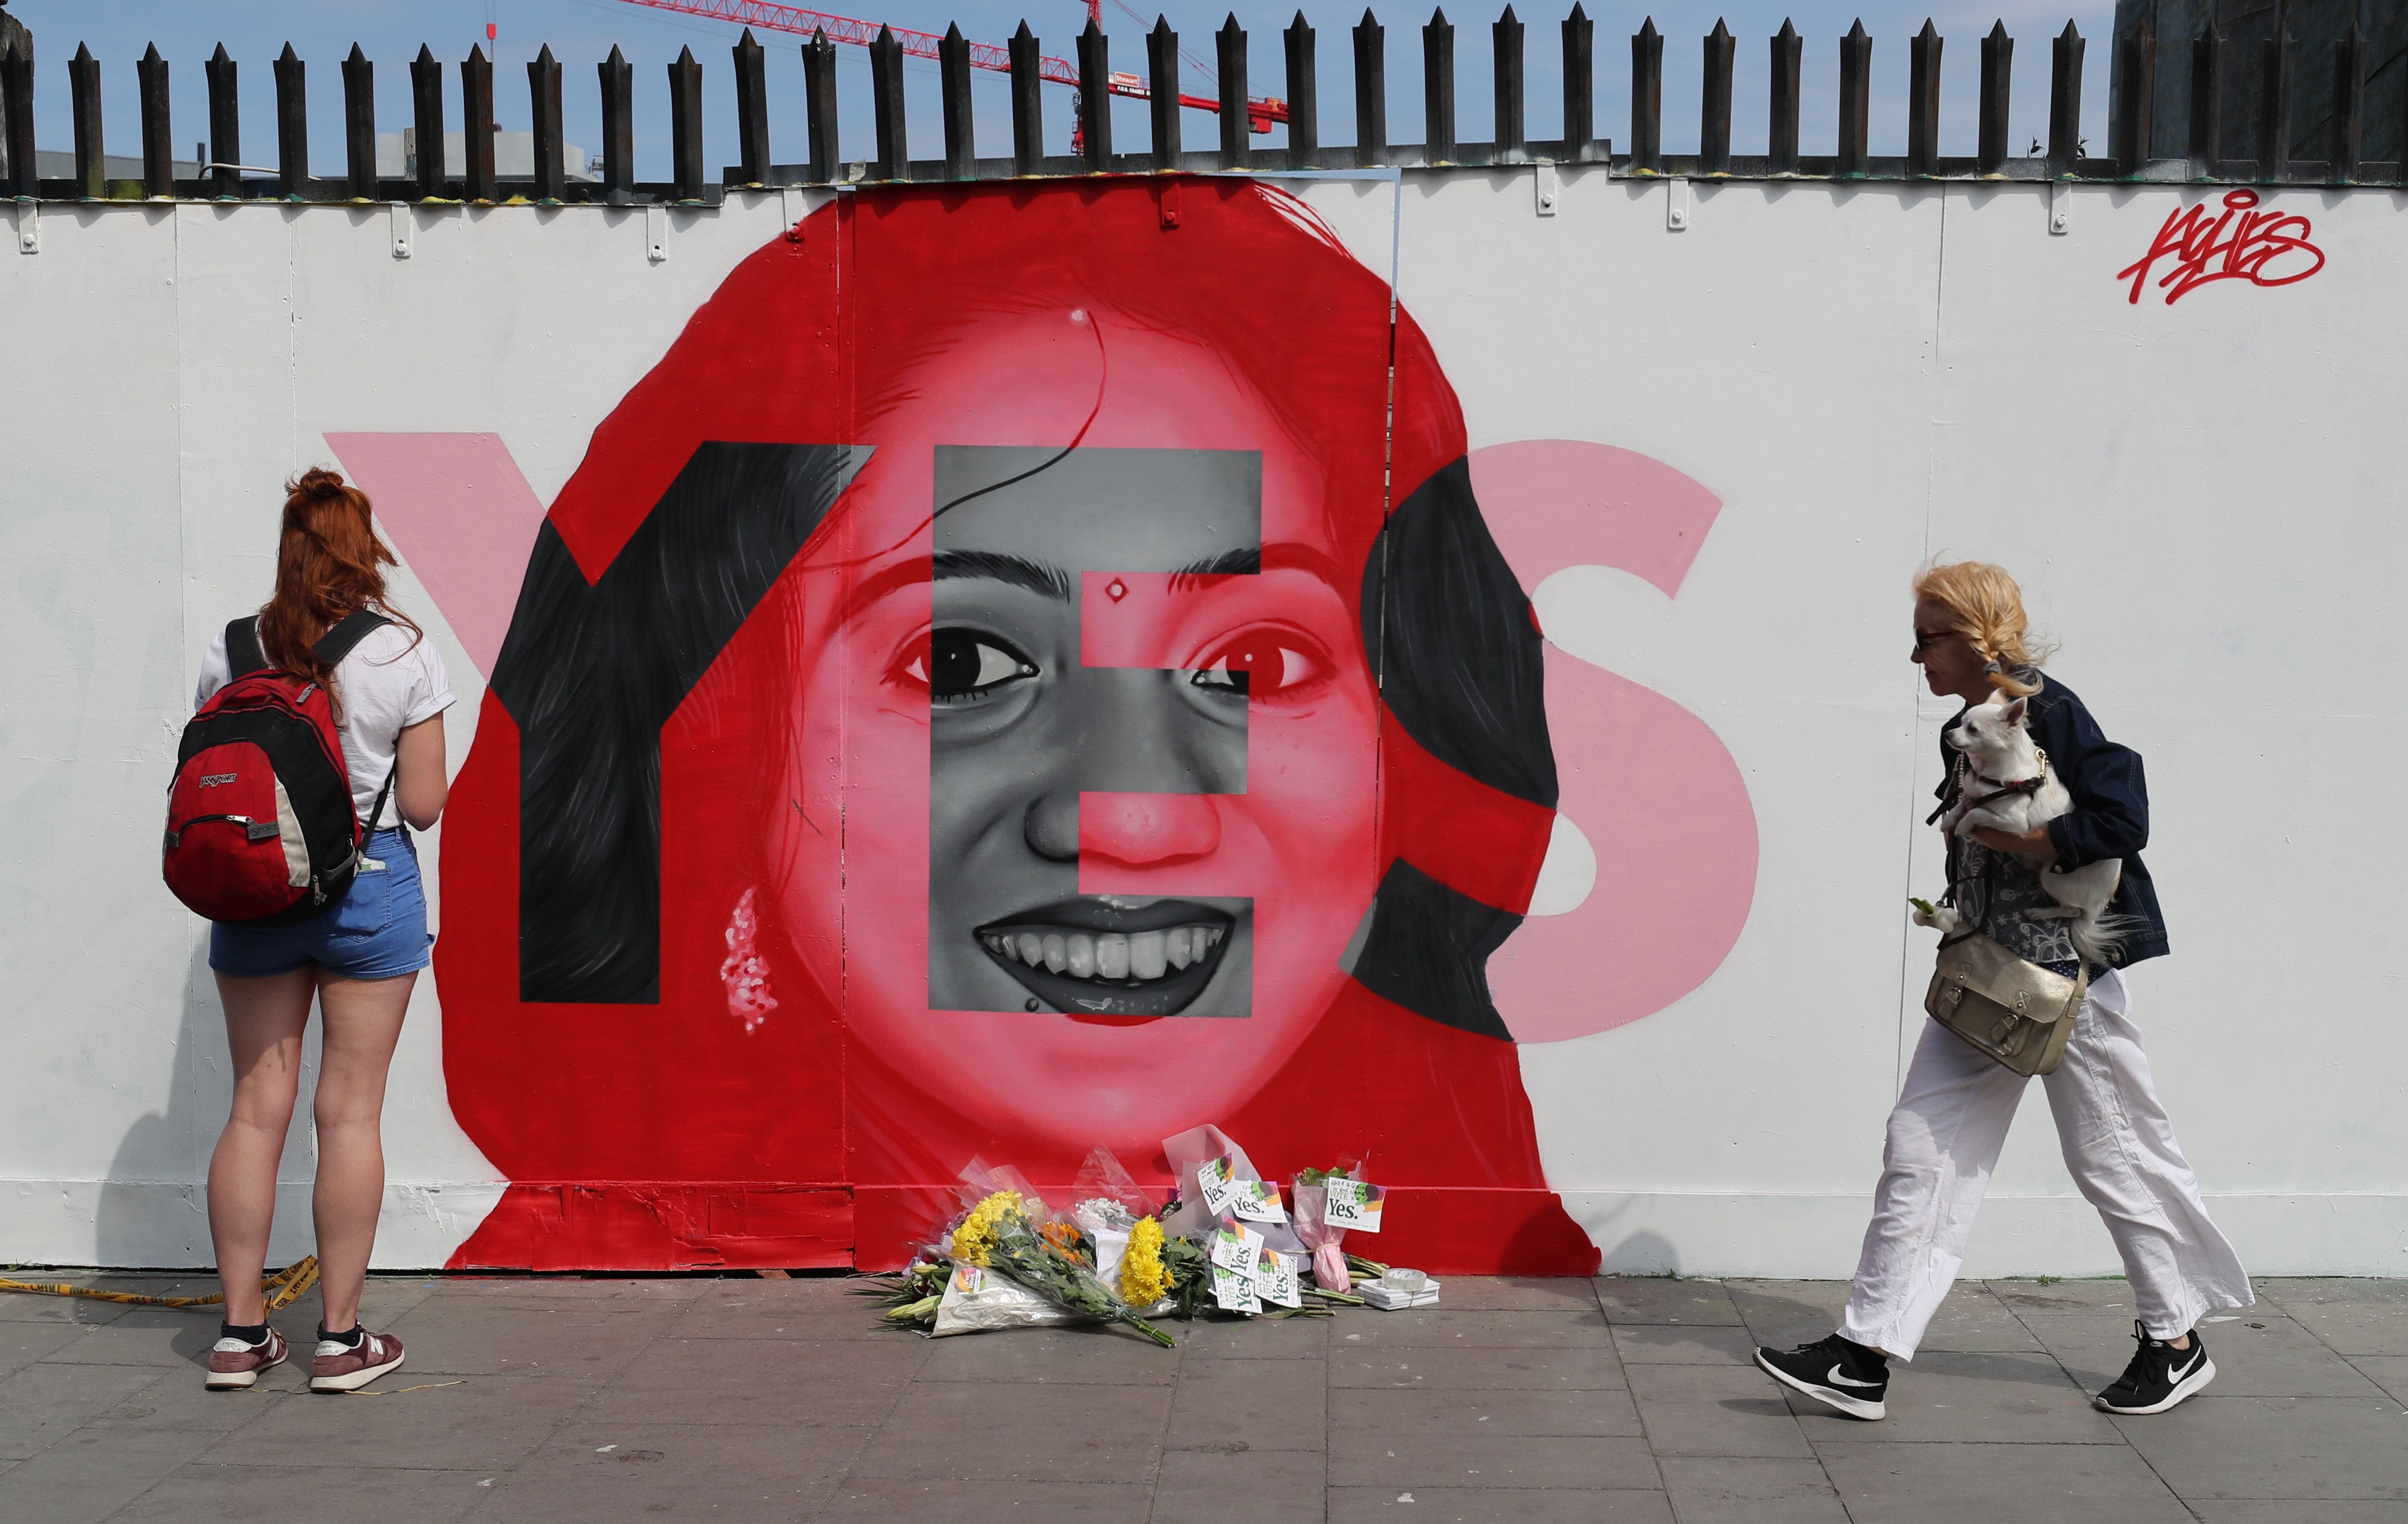 The tragic death that inspired Ireland's pro-choice campaign